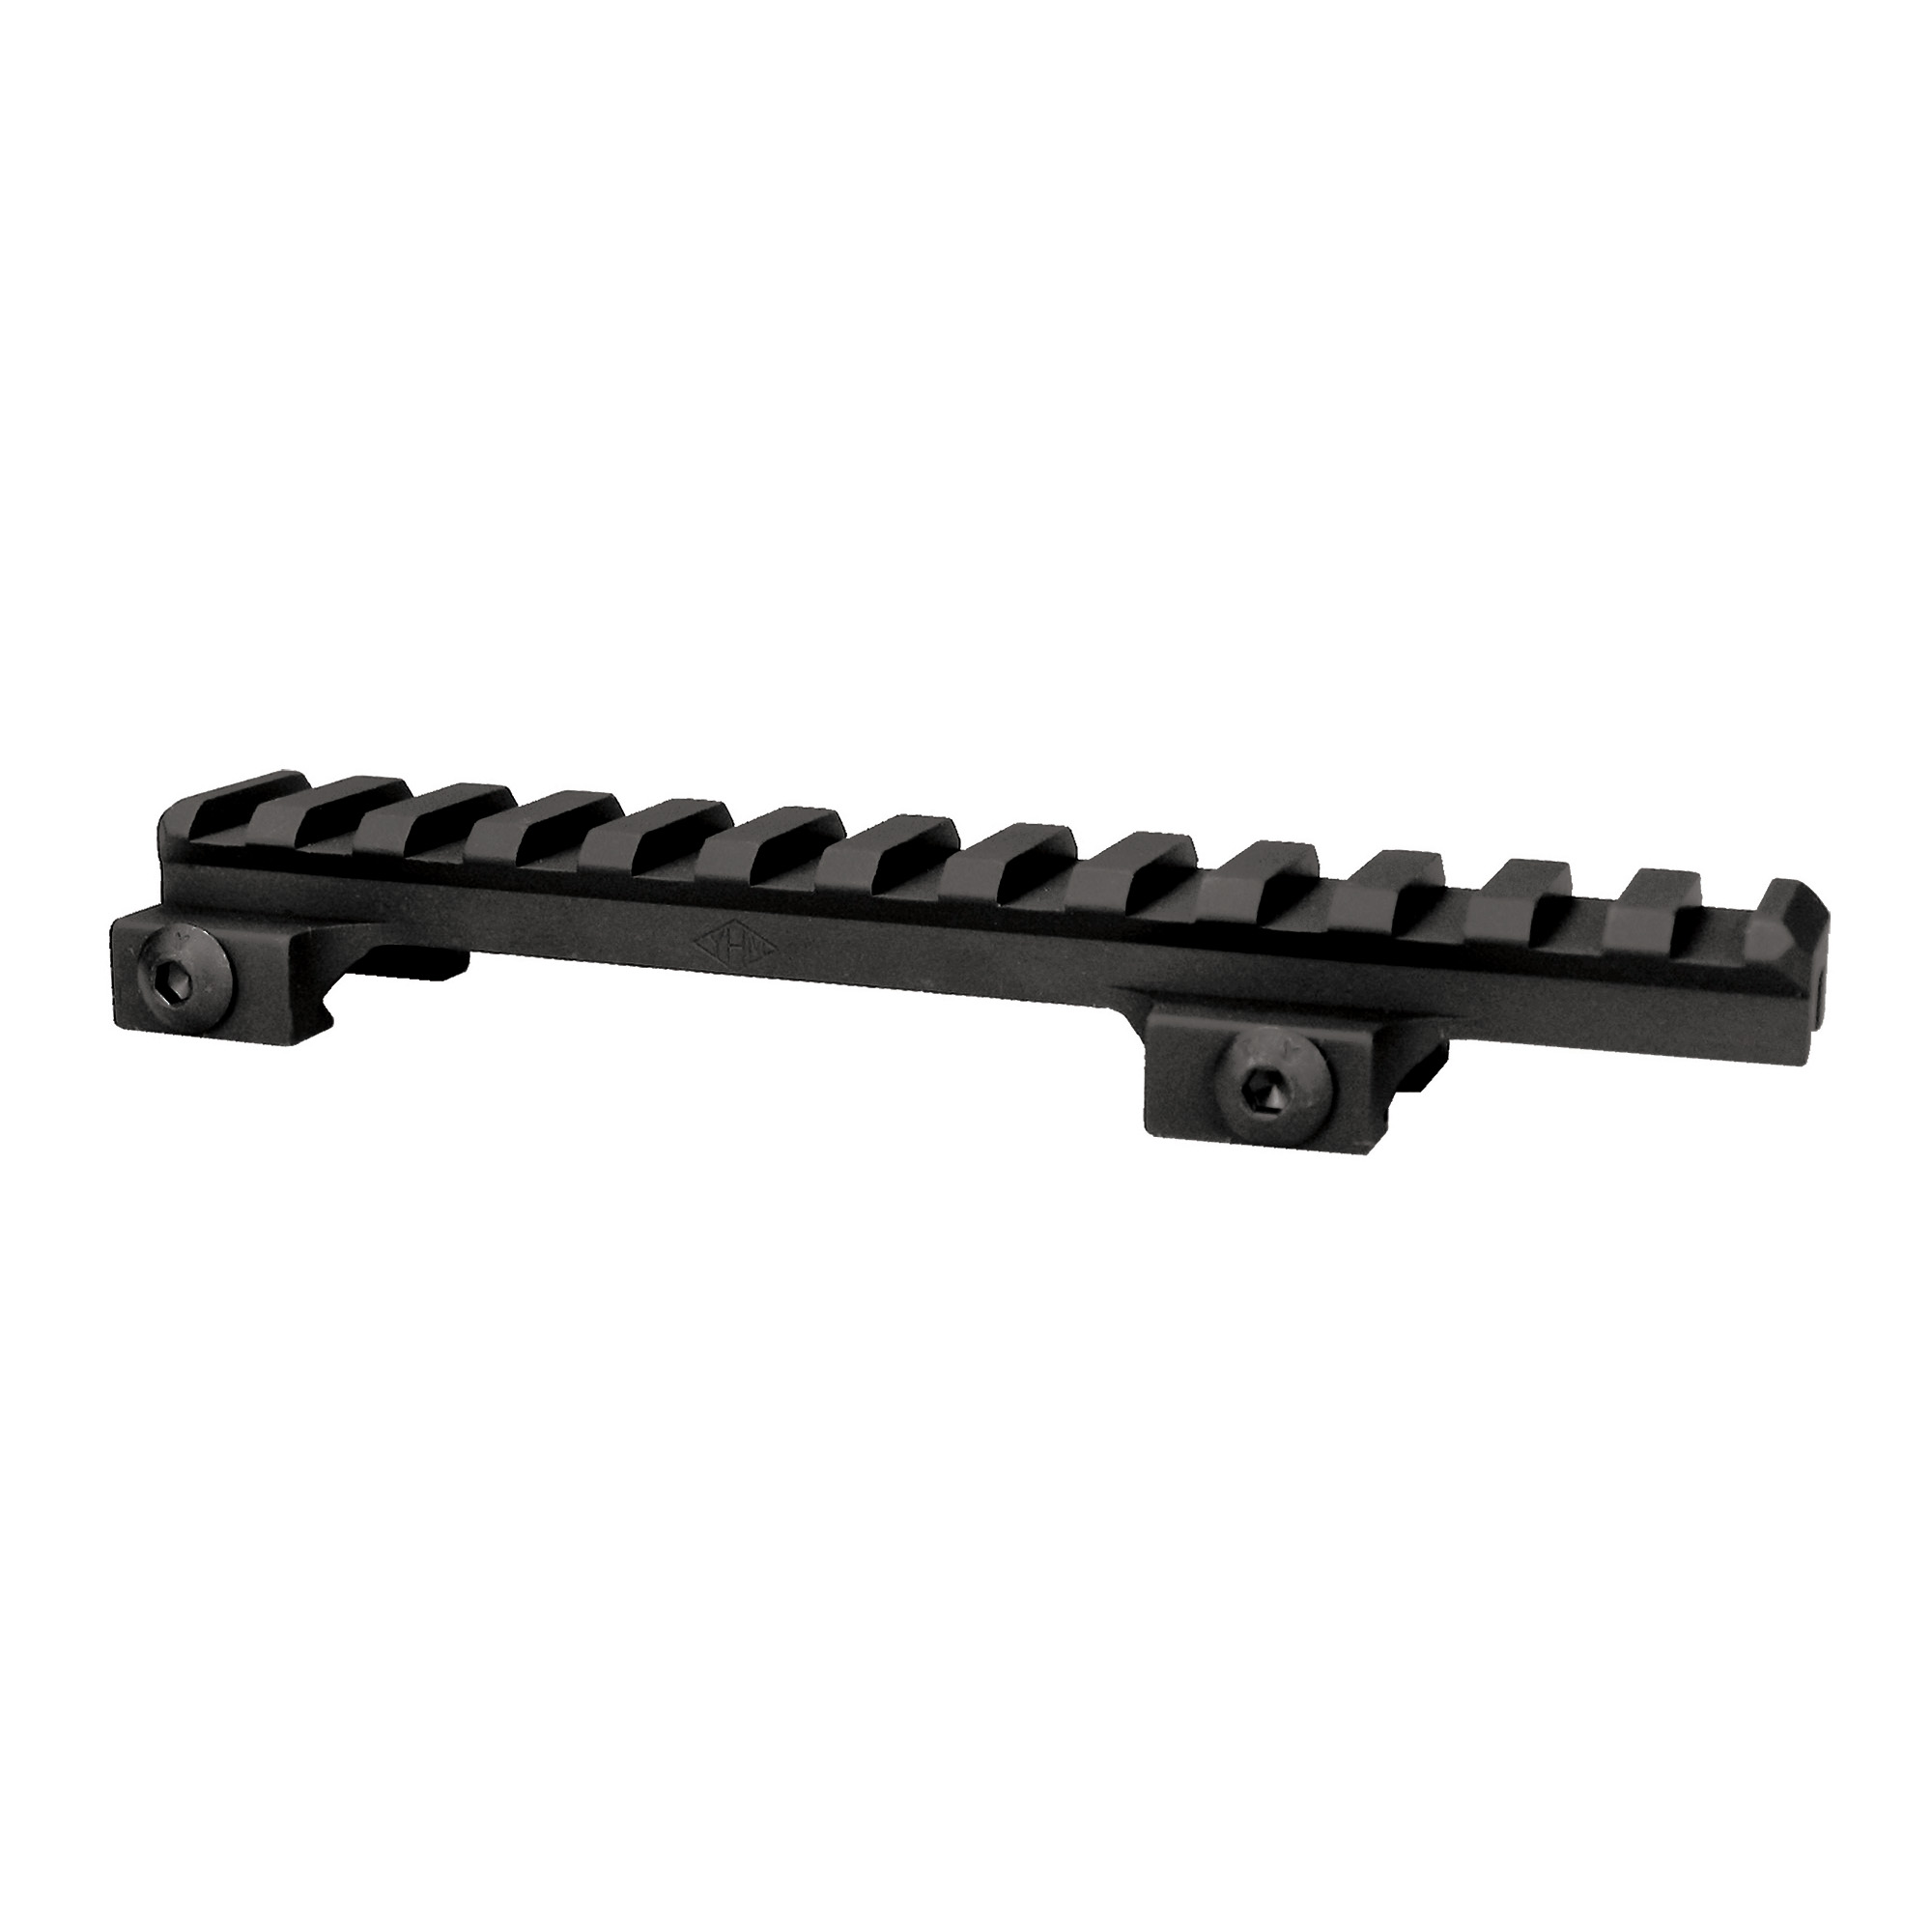 """This scope mount is perfect for varmint rifles. Great for all types of scopes"""" red dot sights"""" and other optics. Raises the equipment one half inch. Mounts to any picatinny rail"""" made from aircraft quality aluminum and hardcoated to military specifications.5-1/4"""" long."""